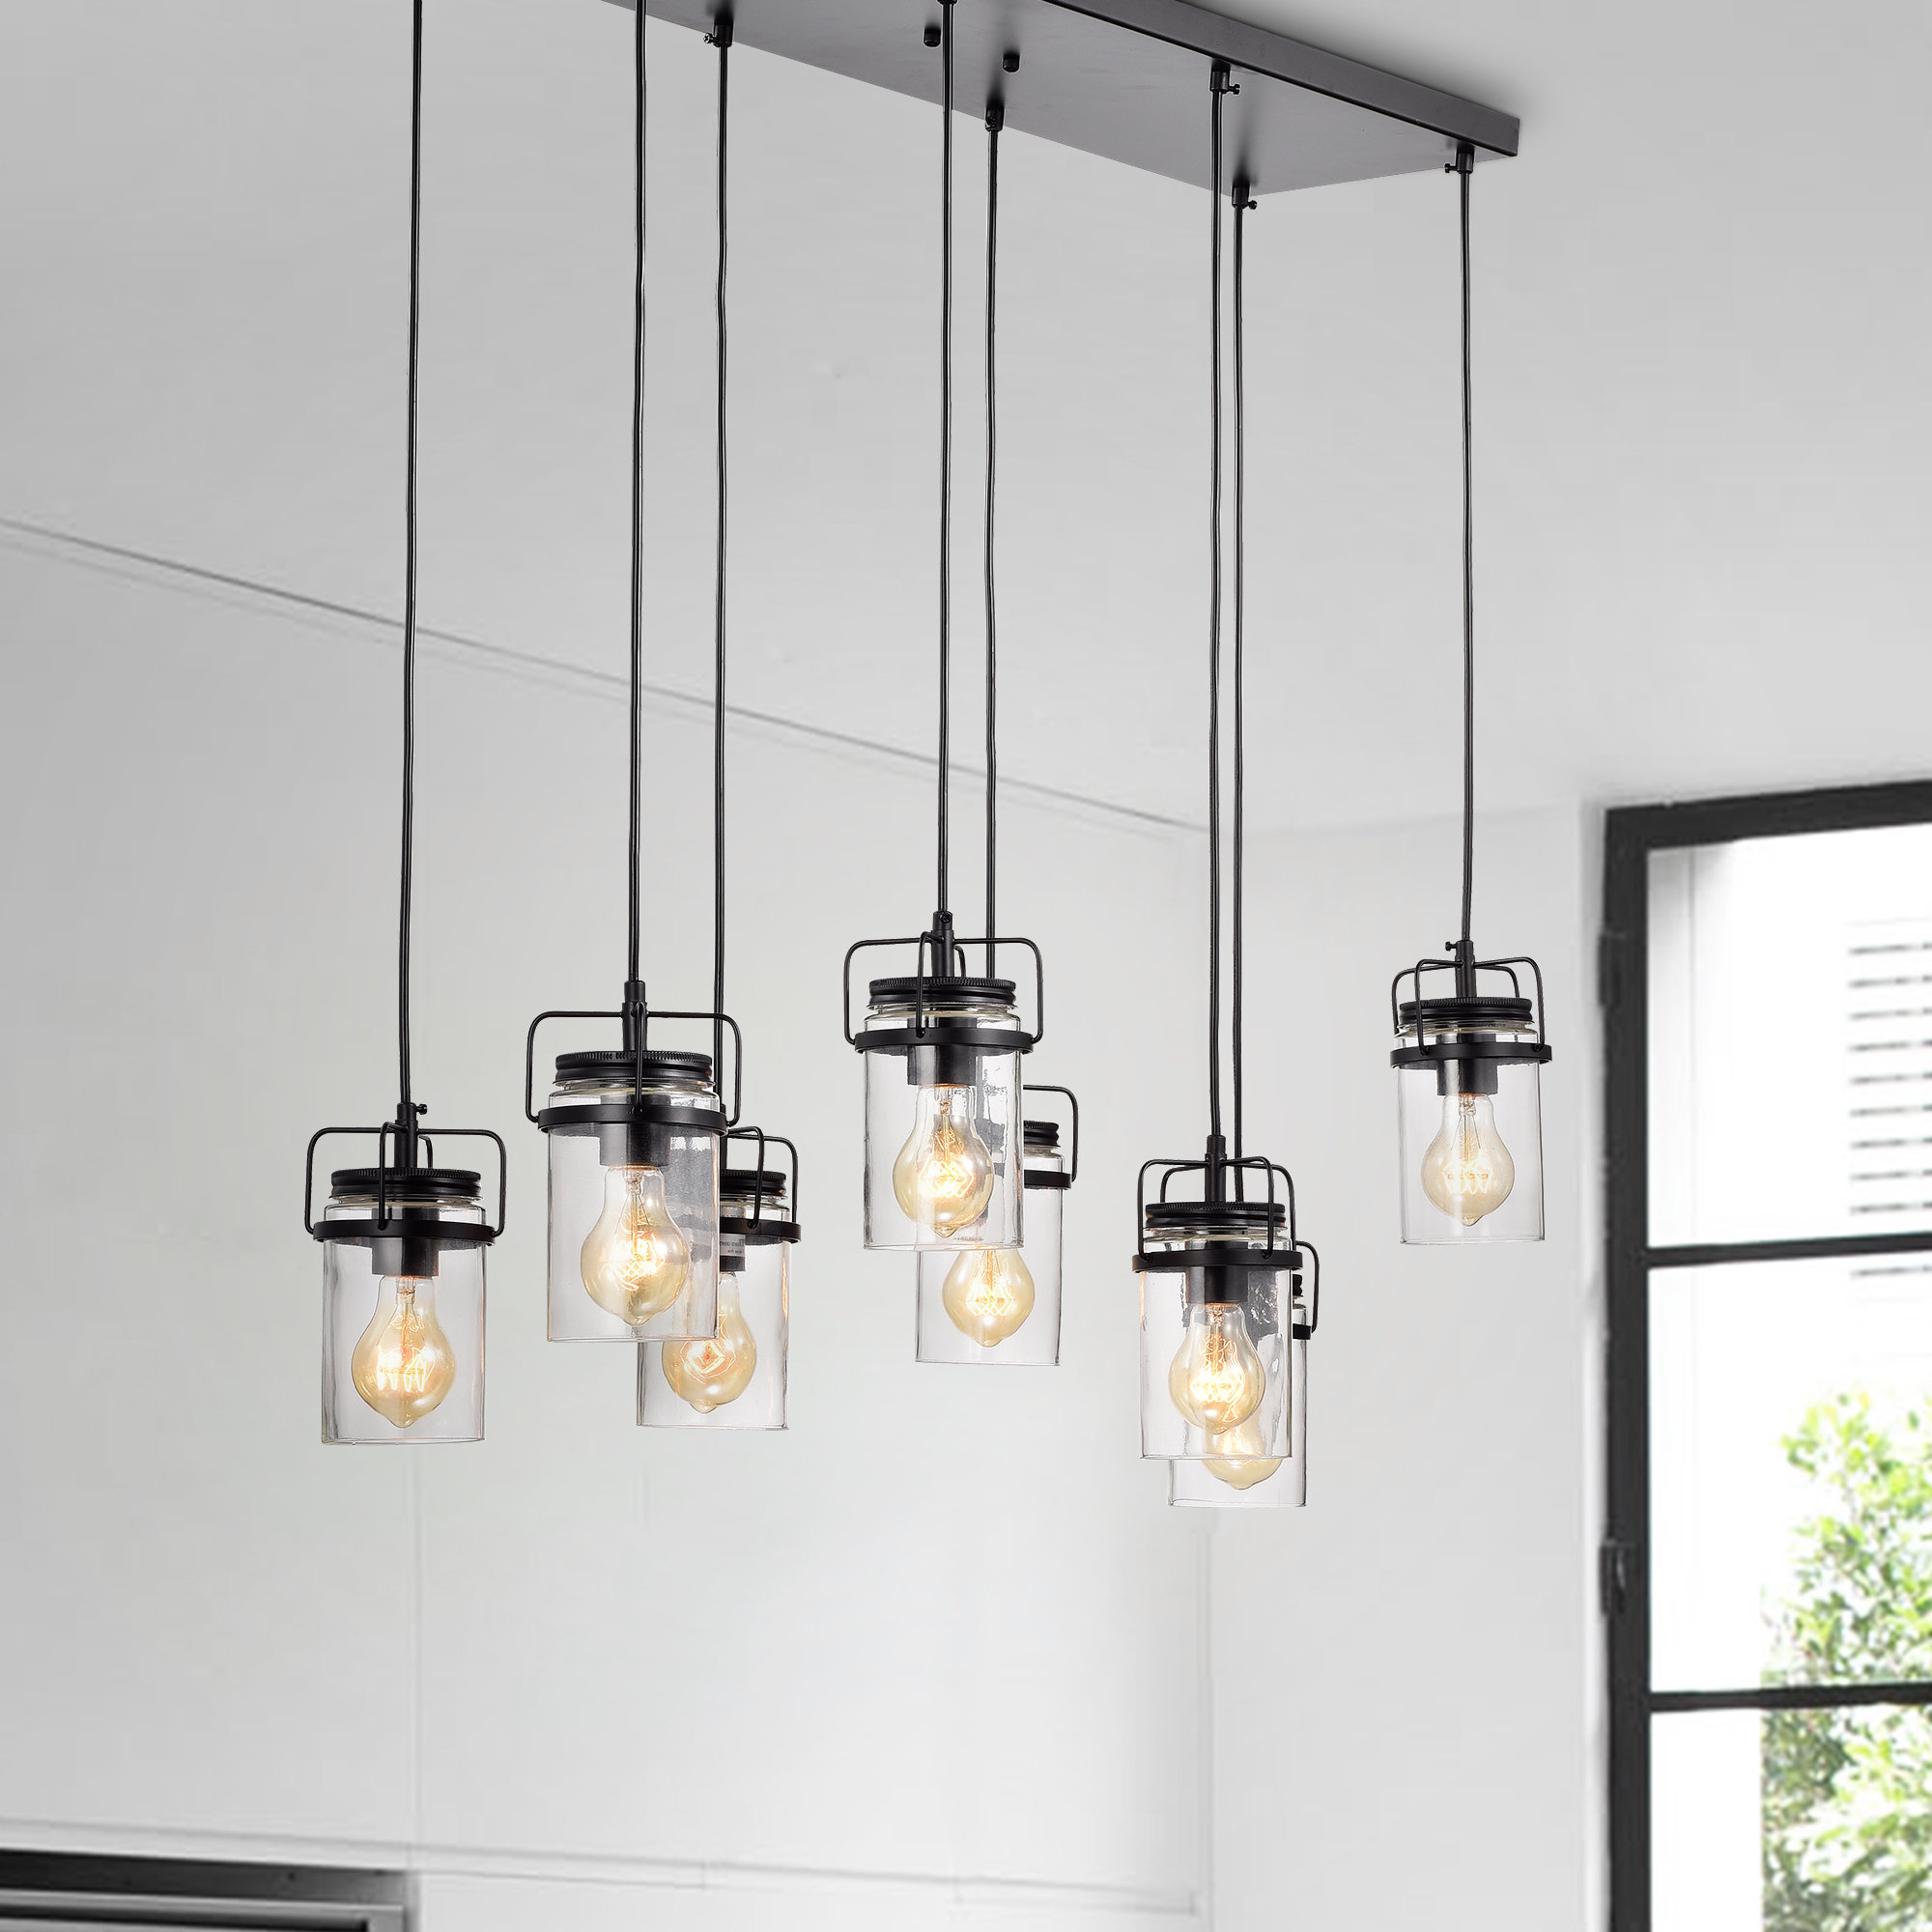 Donald 8 Light Cluster Pendant With Popular Pruett Cognac Glass 8 Light Cluster Pendants (View 2 of 20)